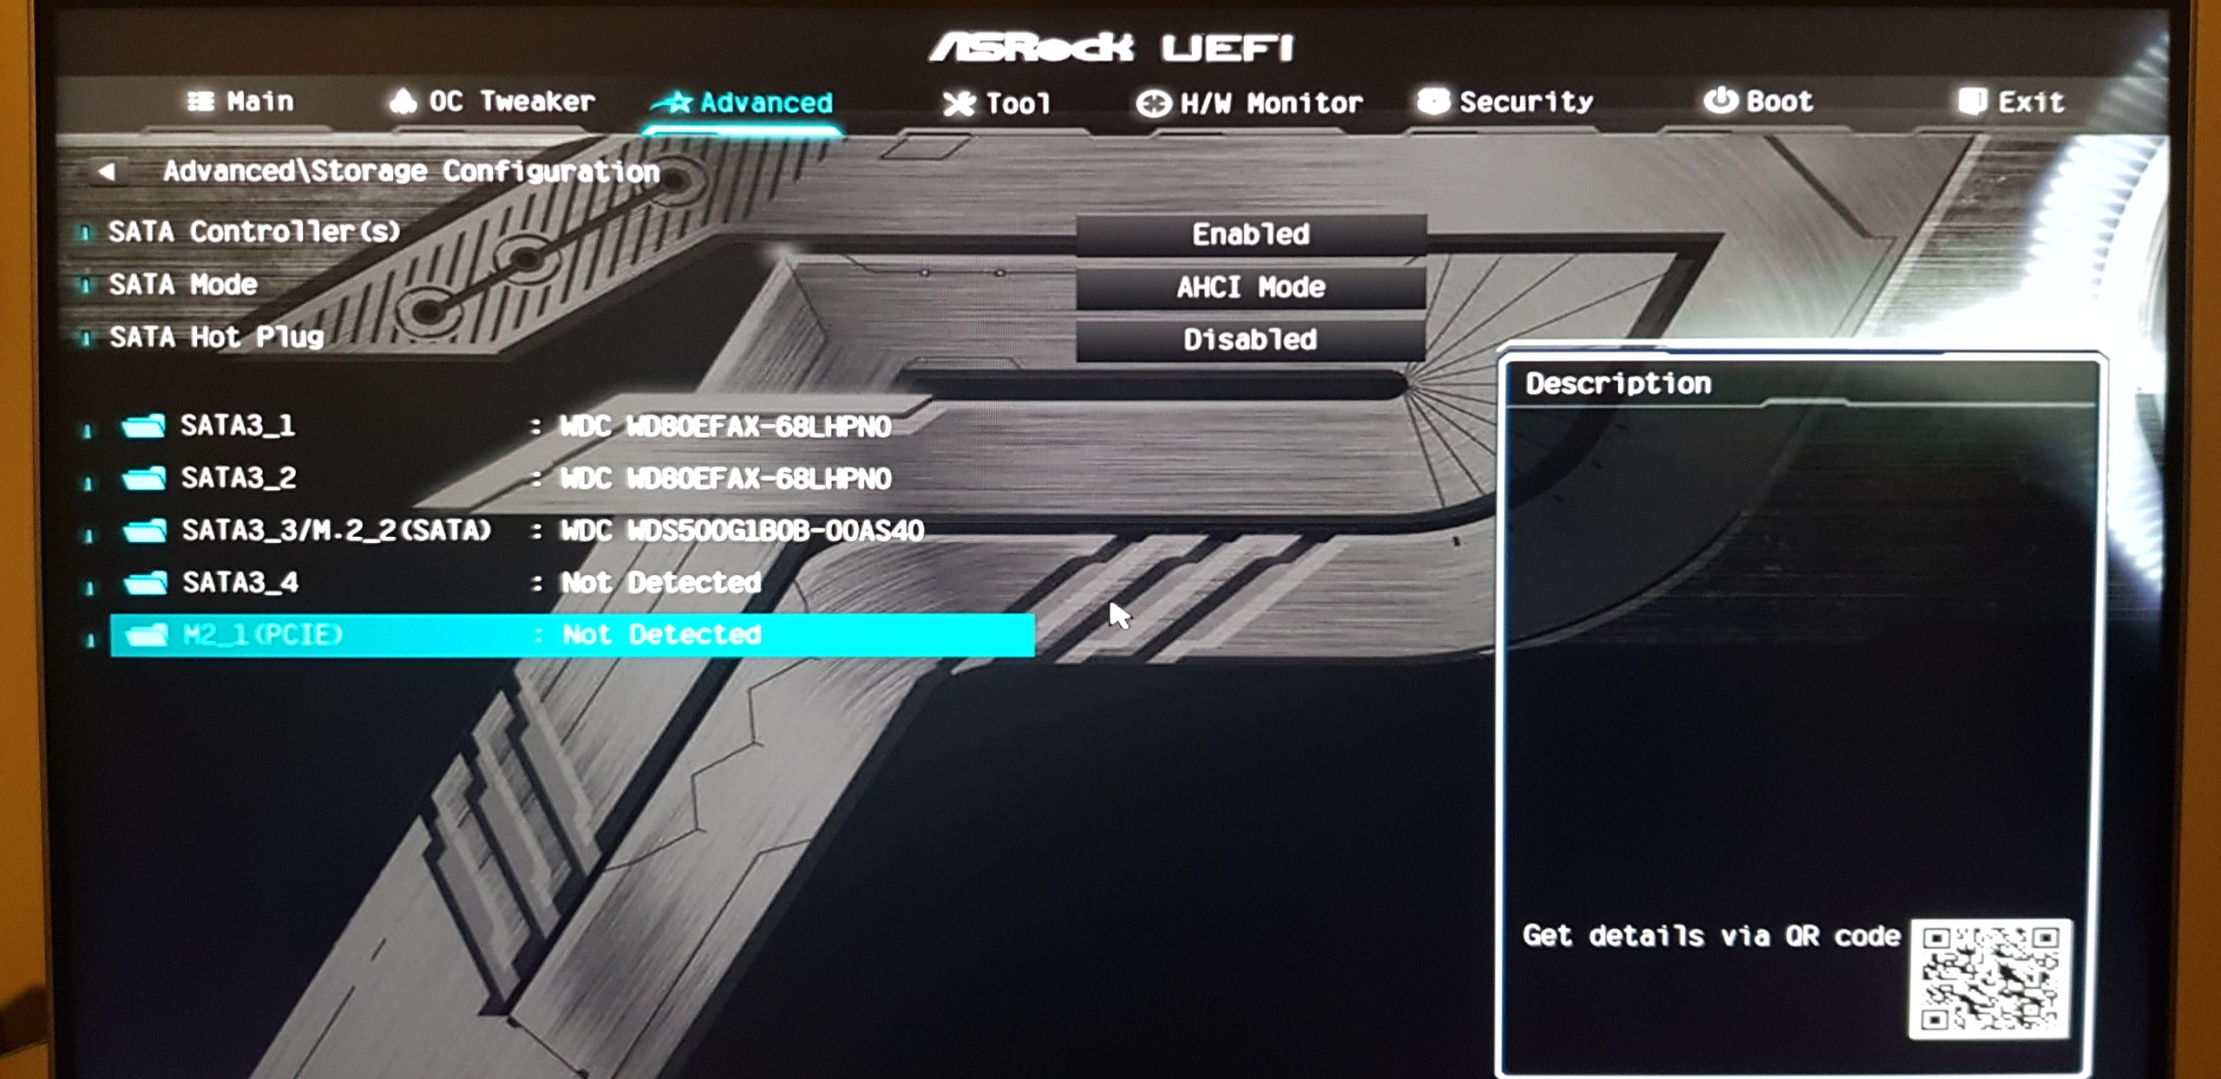 HDD shows in BIOS but not in unRAID - General Support - Unraid